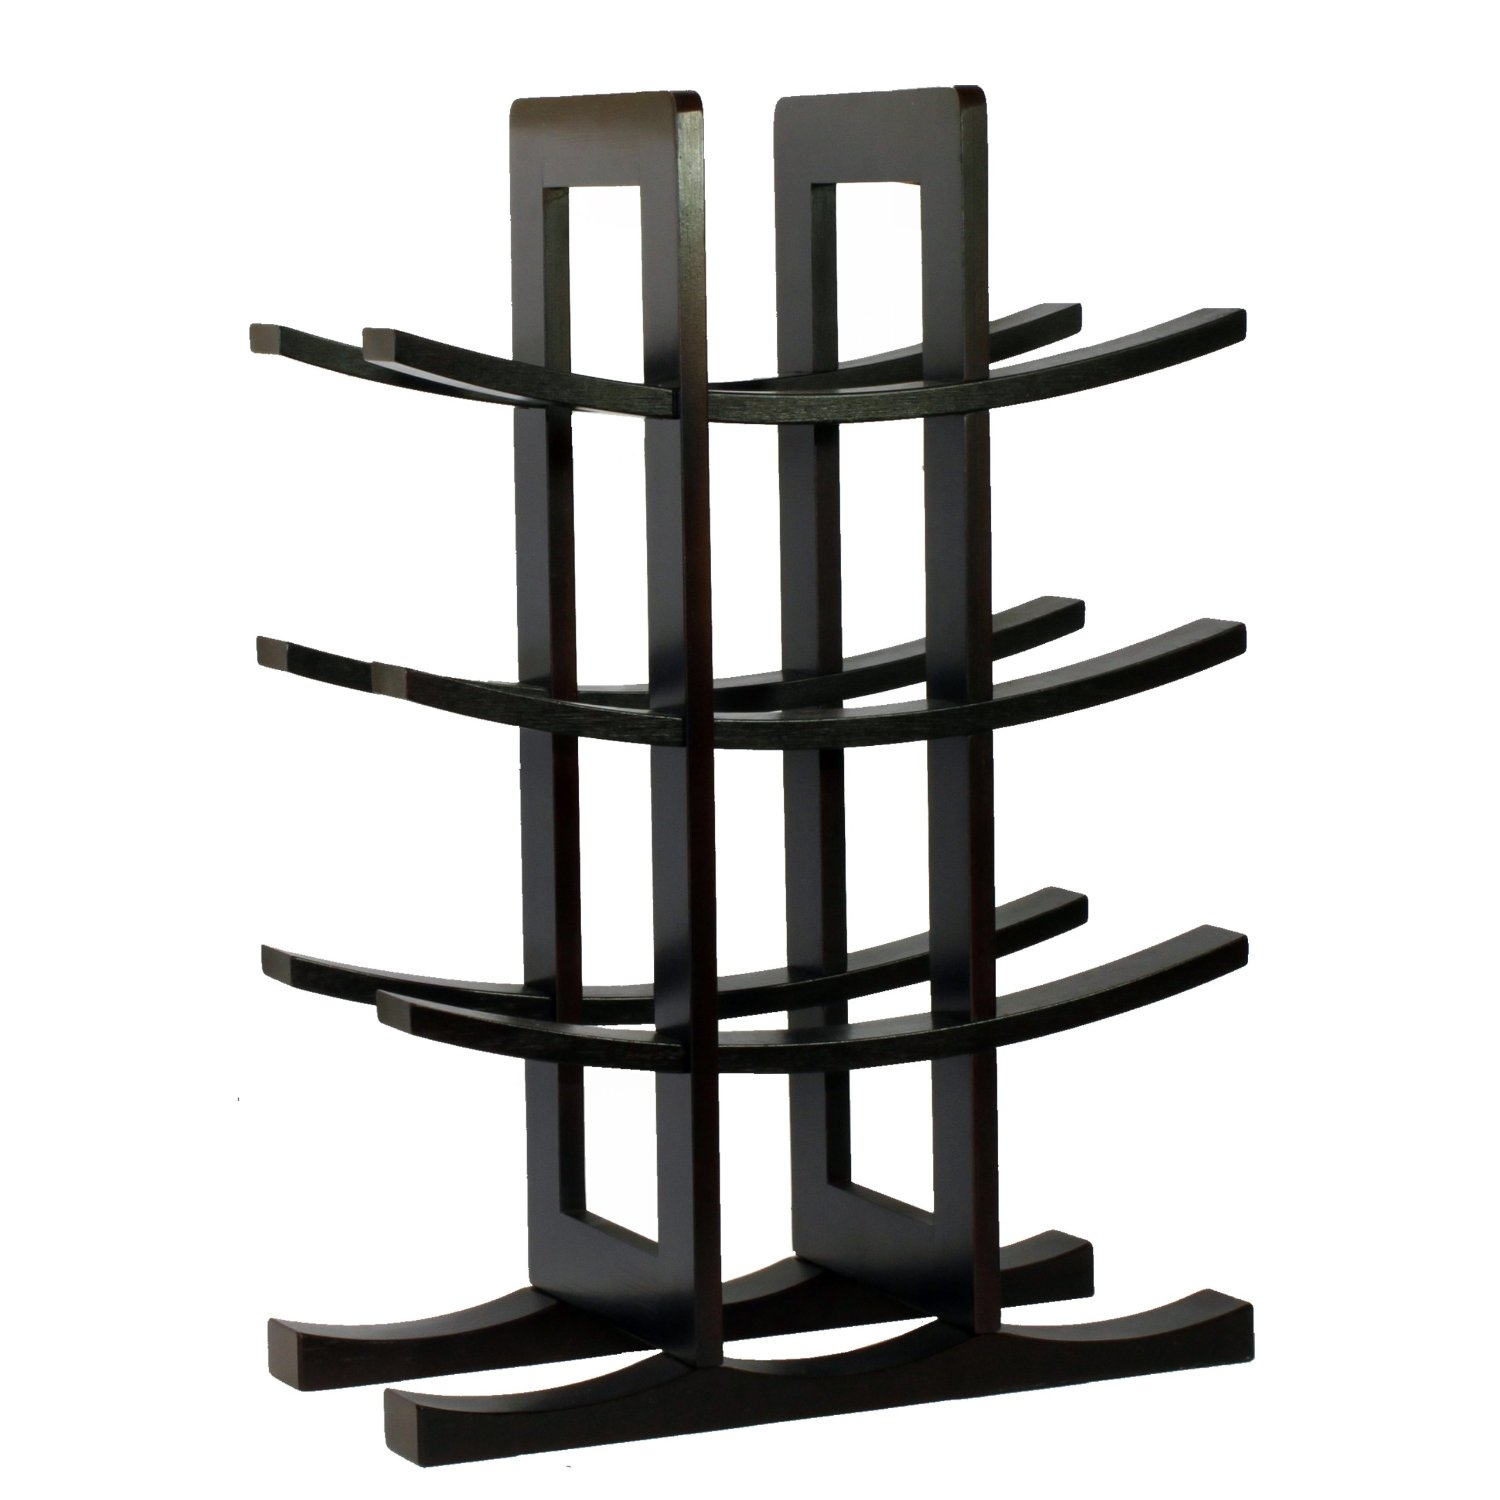 Made with 100% bamboo, this 12-Bottle Wine Rack in Dark Espresso Finish Bamboo is the ideal fit for wine enthusiasts or starters beginning their wine collection. Present this wine rack to someone special or as a wonderful housewarming and Christmas gift. Its modern design is the perfect complement to any home and counter top. Your house guests will surely be impressed by the beautiful display of your collection. Wine bottle is not included.